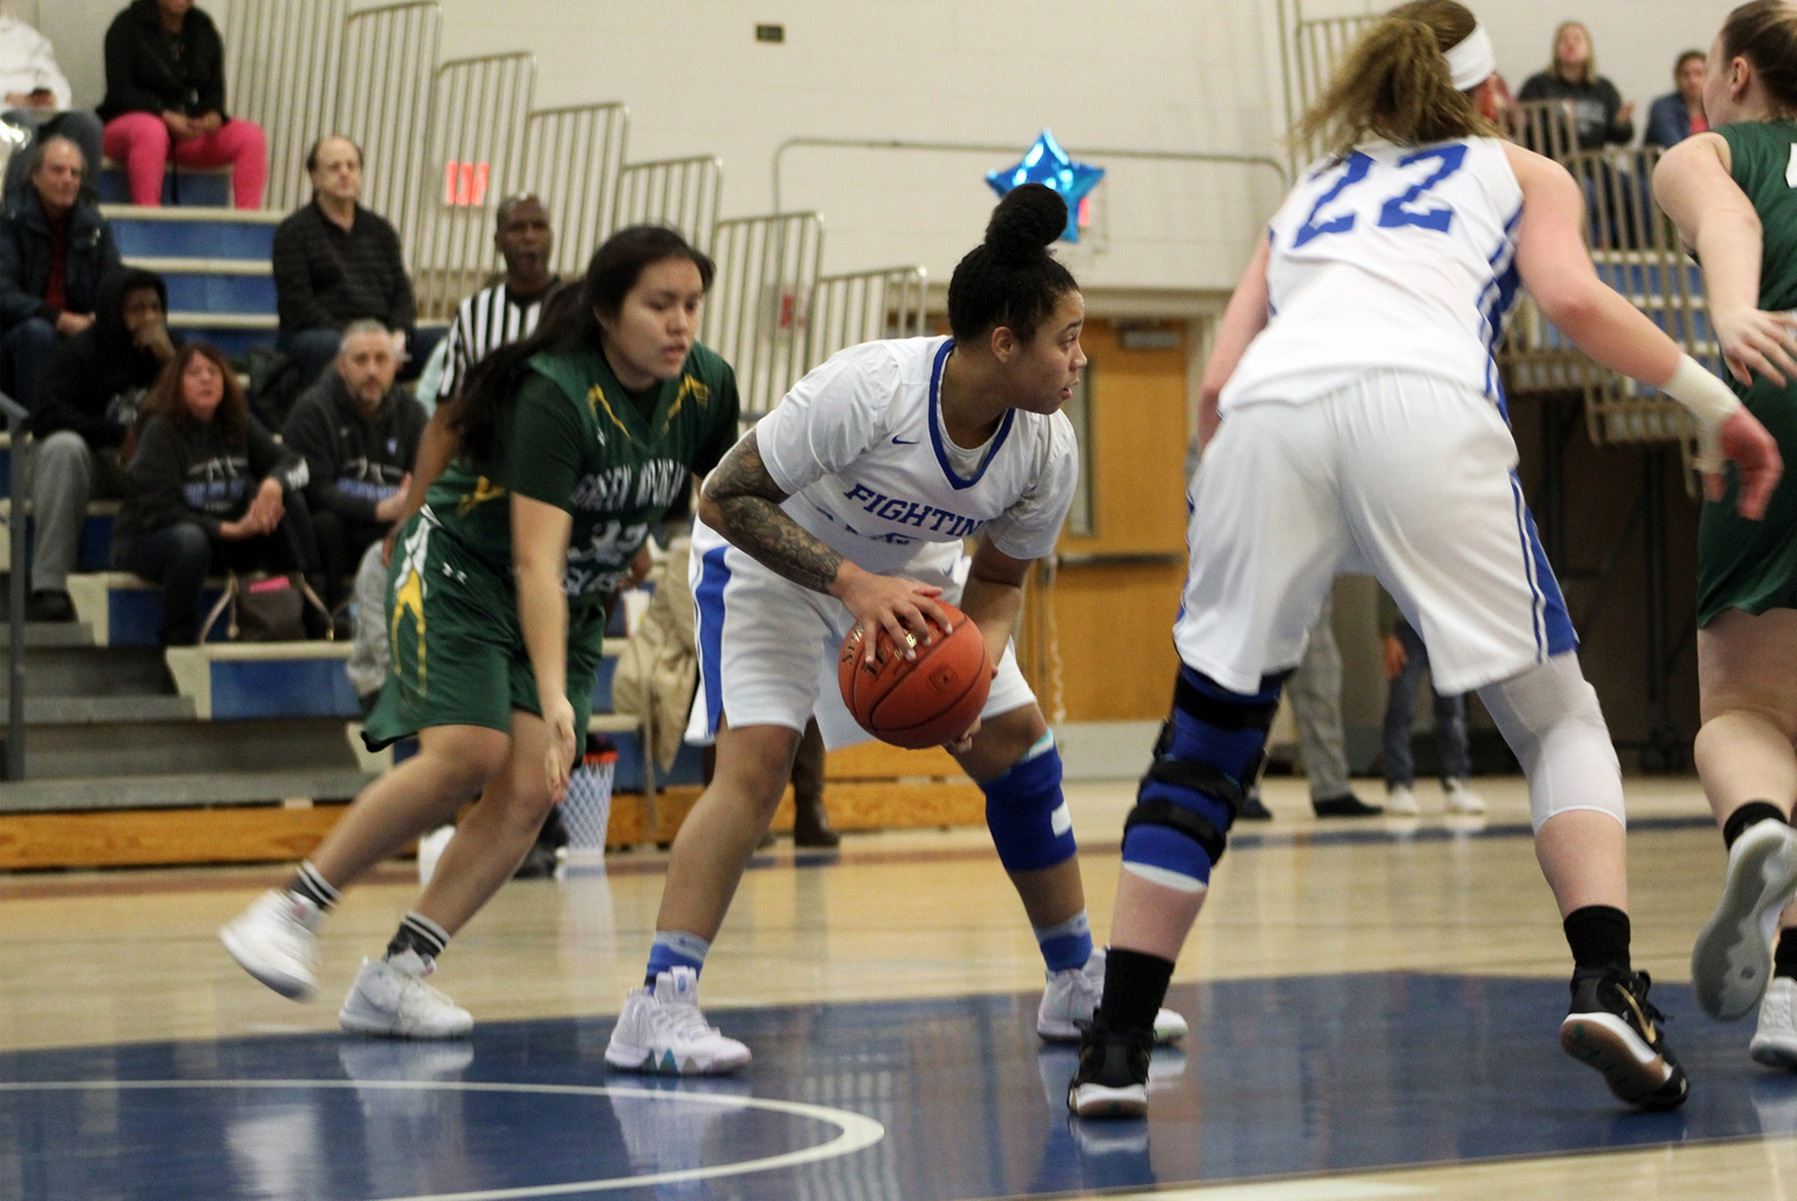 Lady Saints playing in postseason form